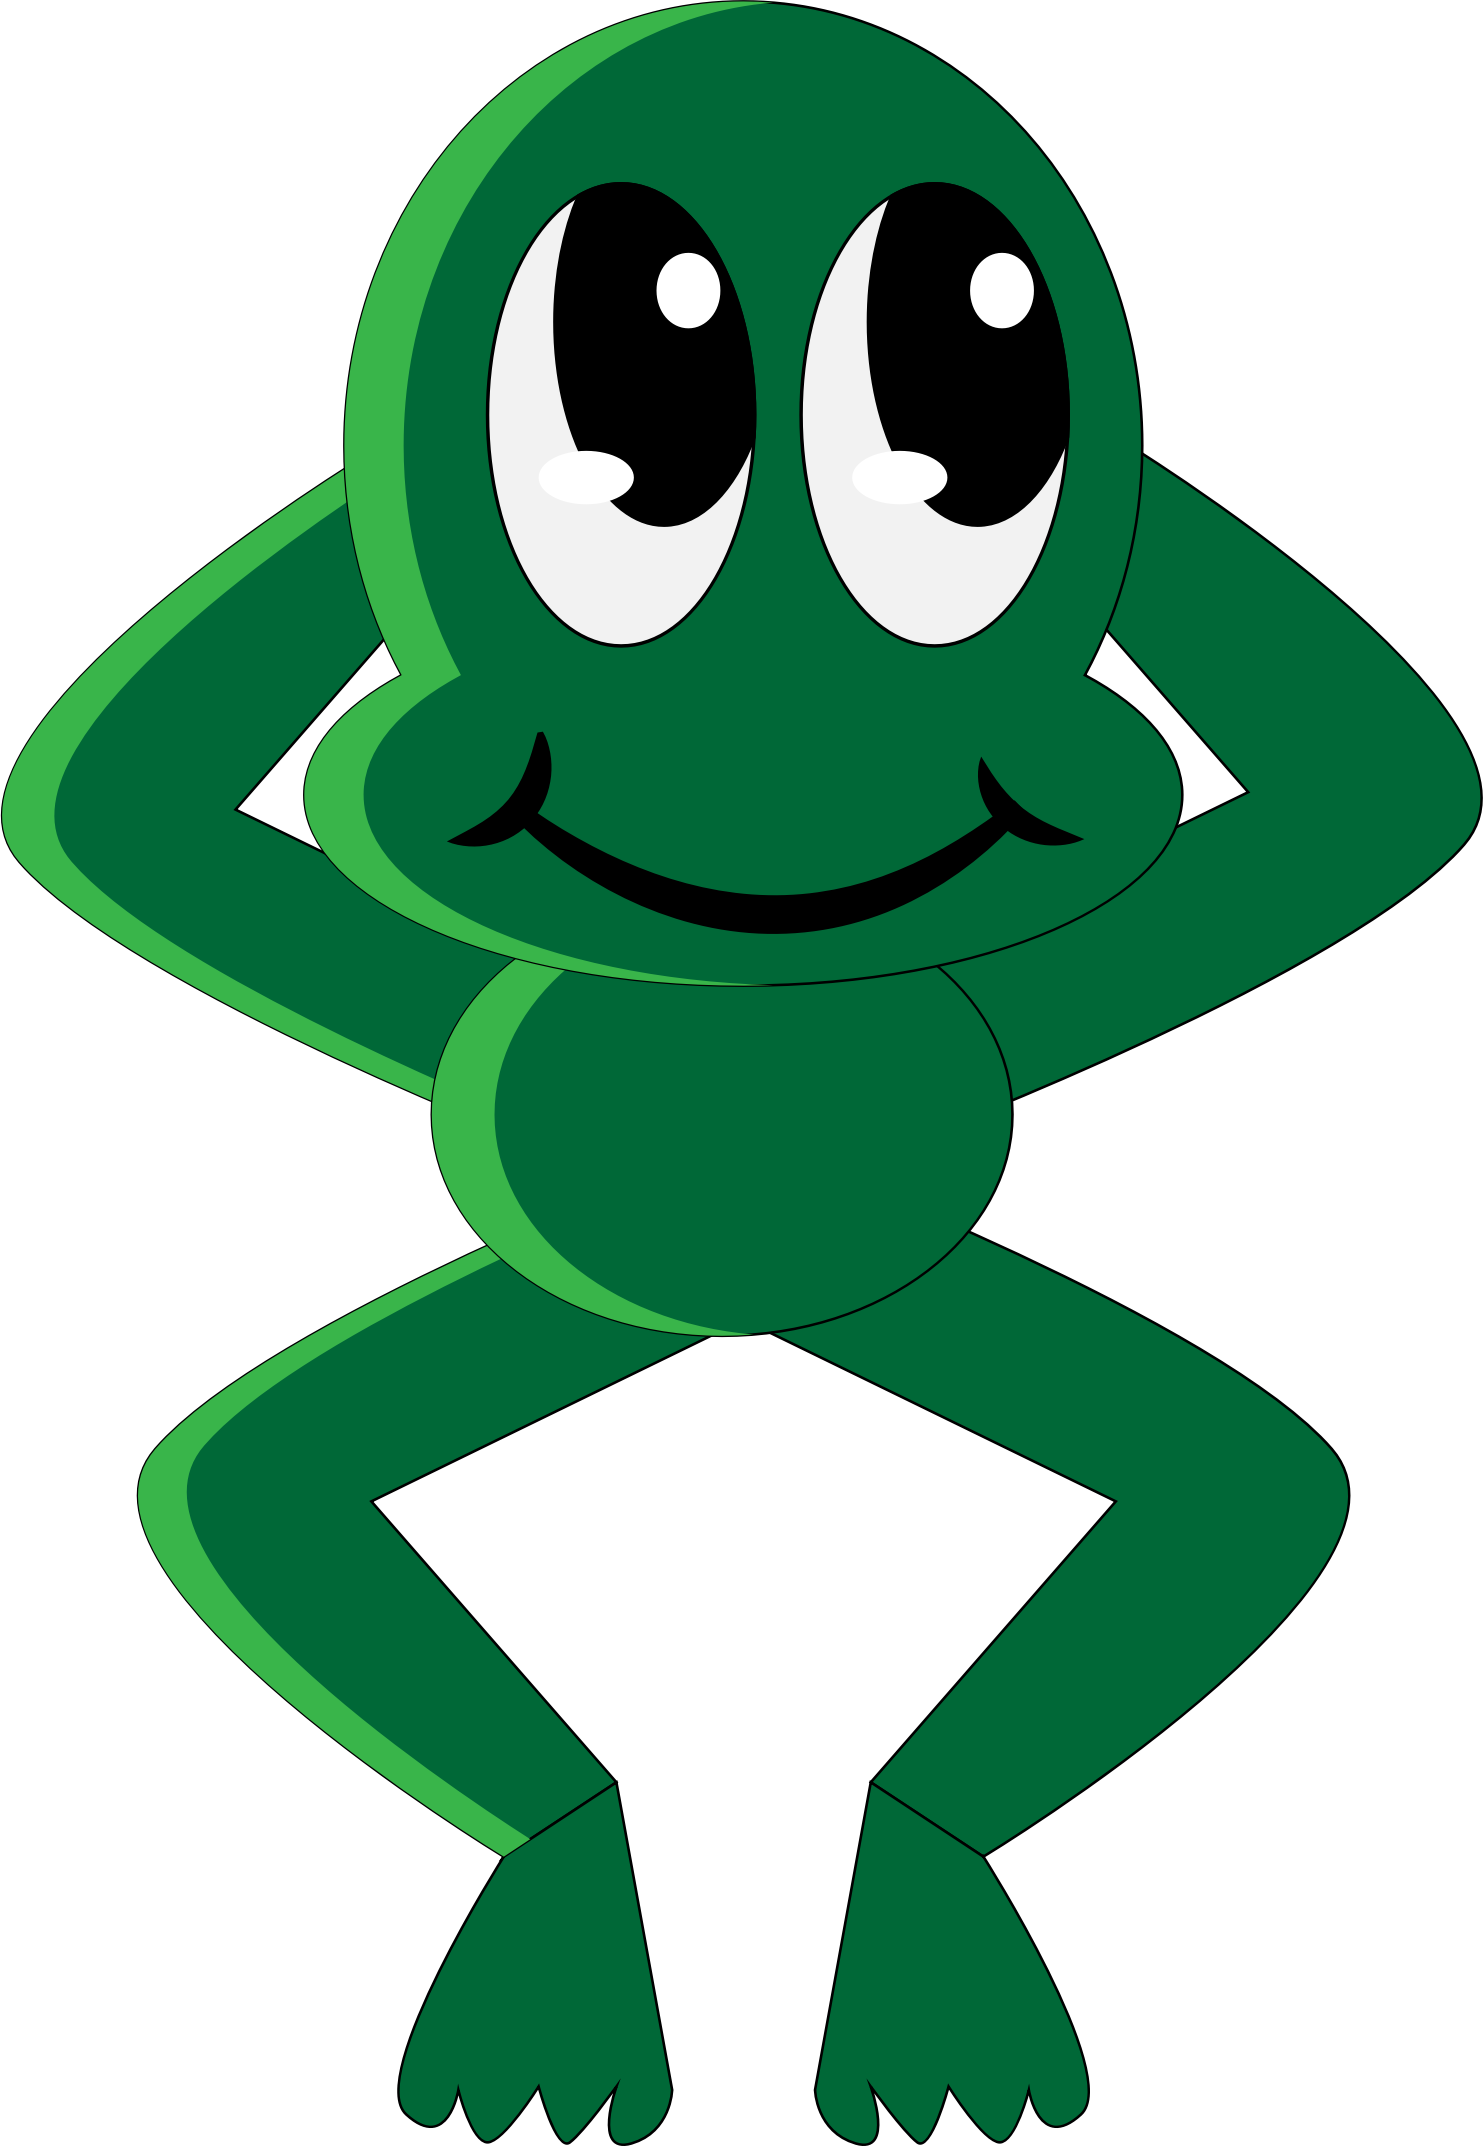 Clipart smile tree. Relaxed smiling froggy big